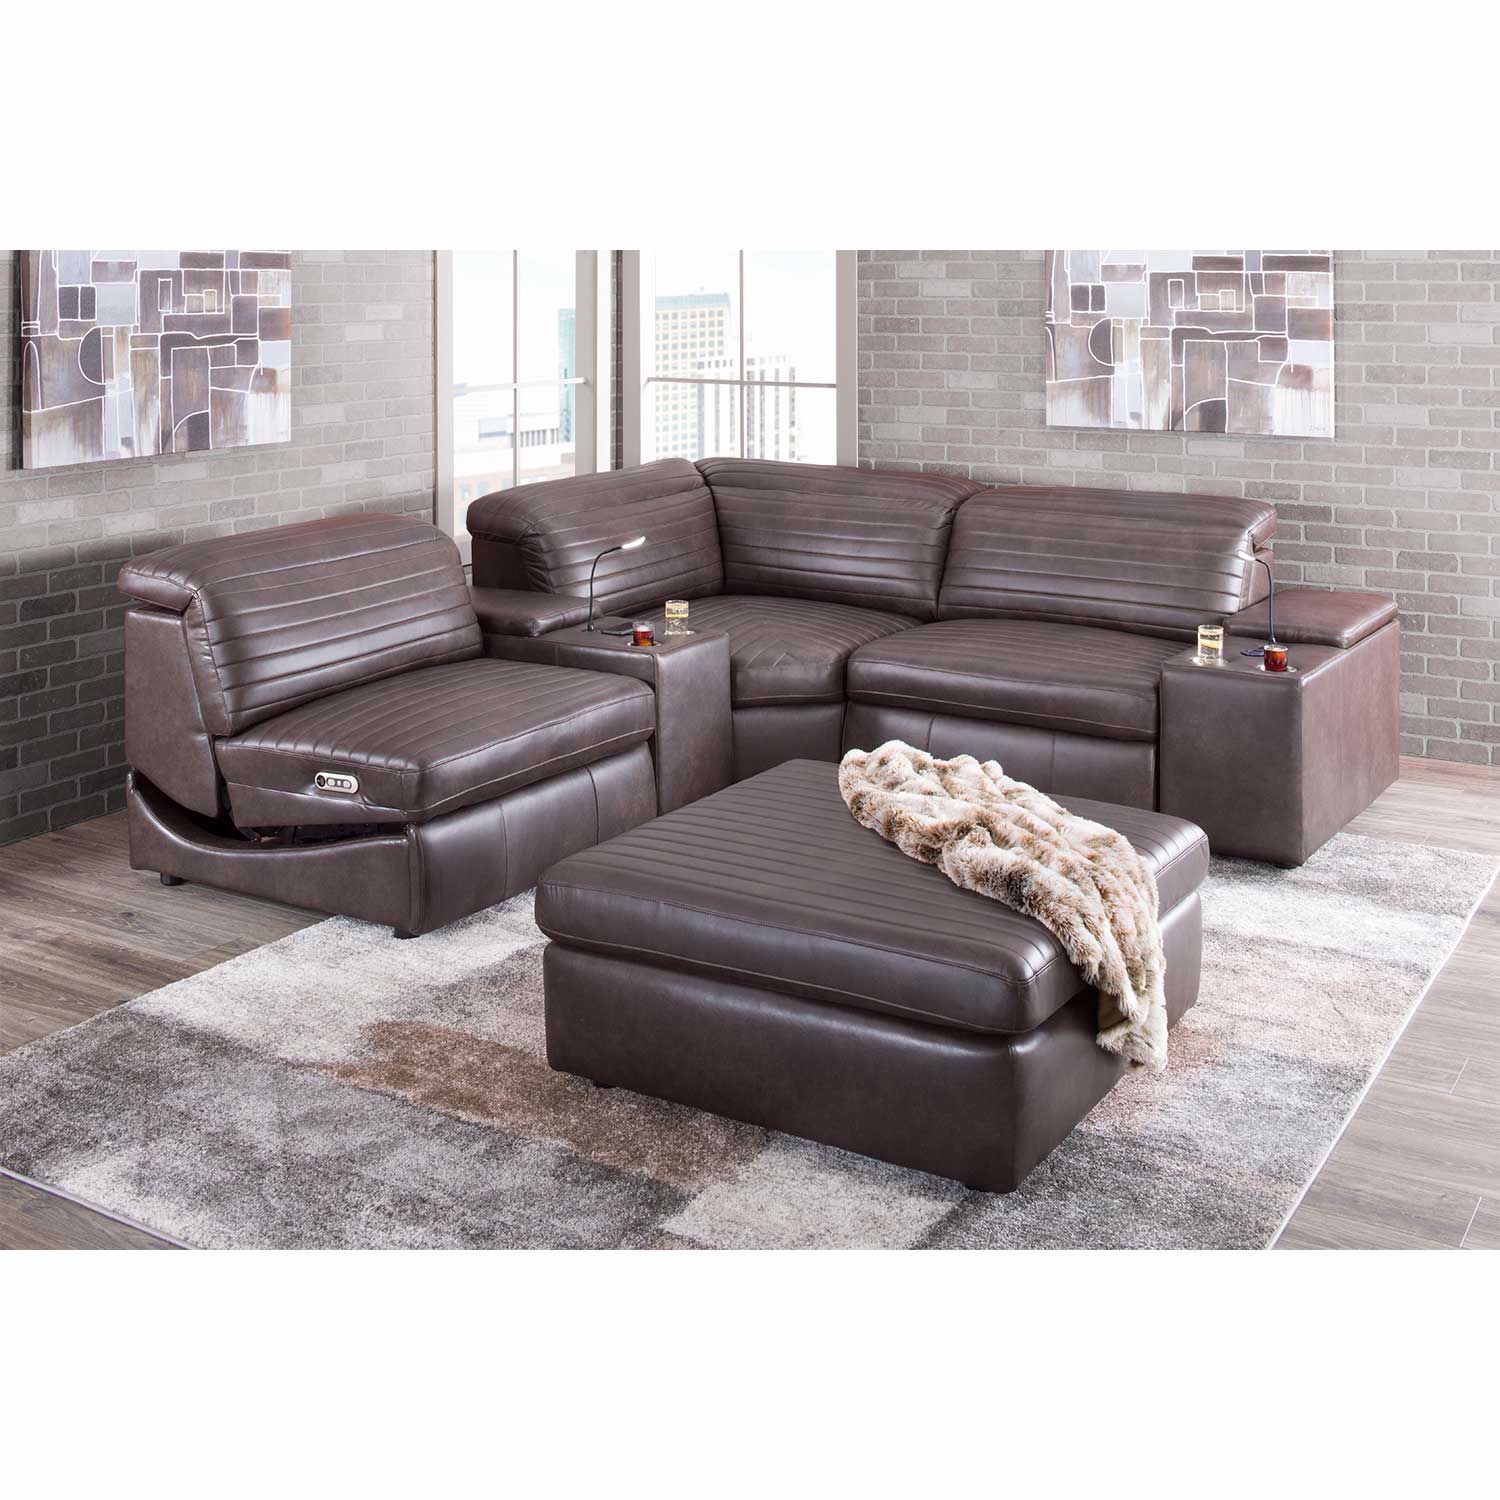 Picture of Jett Leather Ottoman